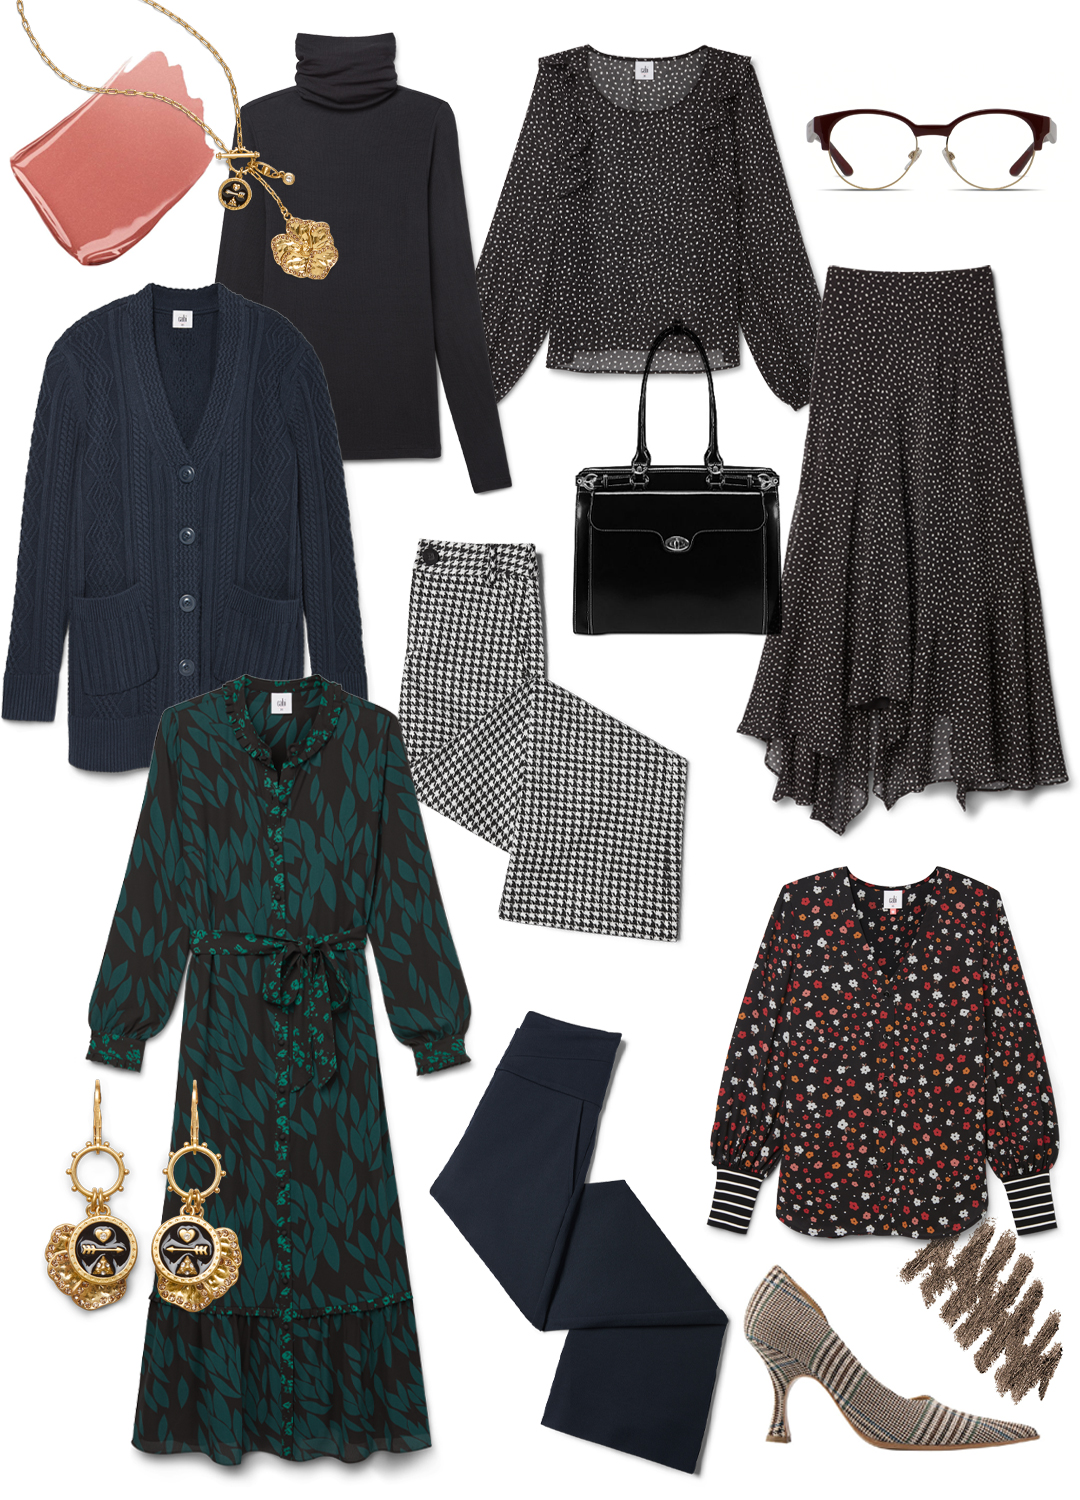 cabi Clothing | Fall 2020 | Office Outfit Trend